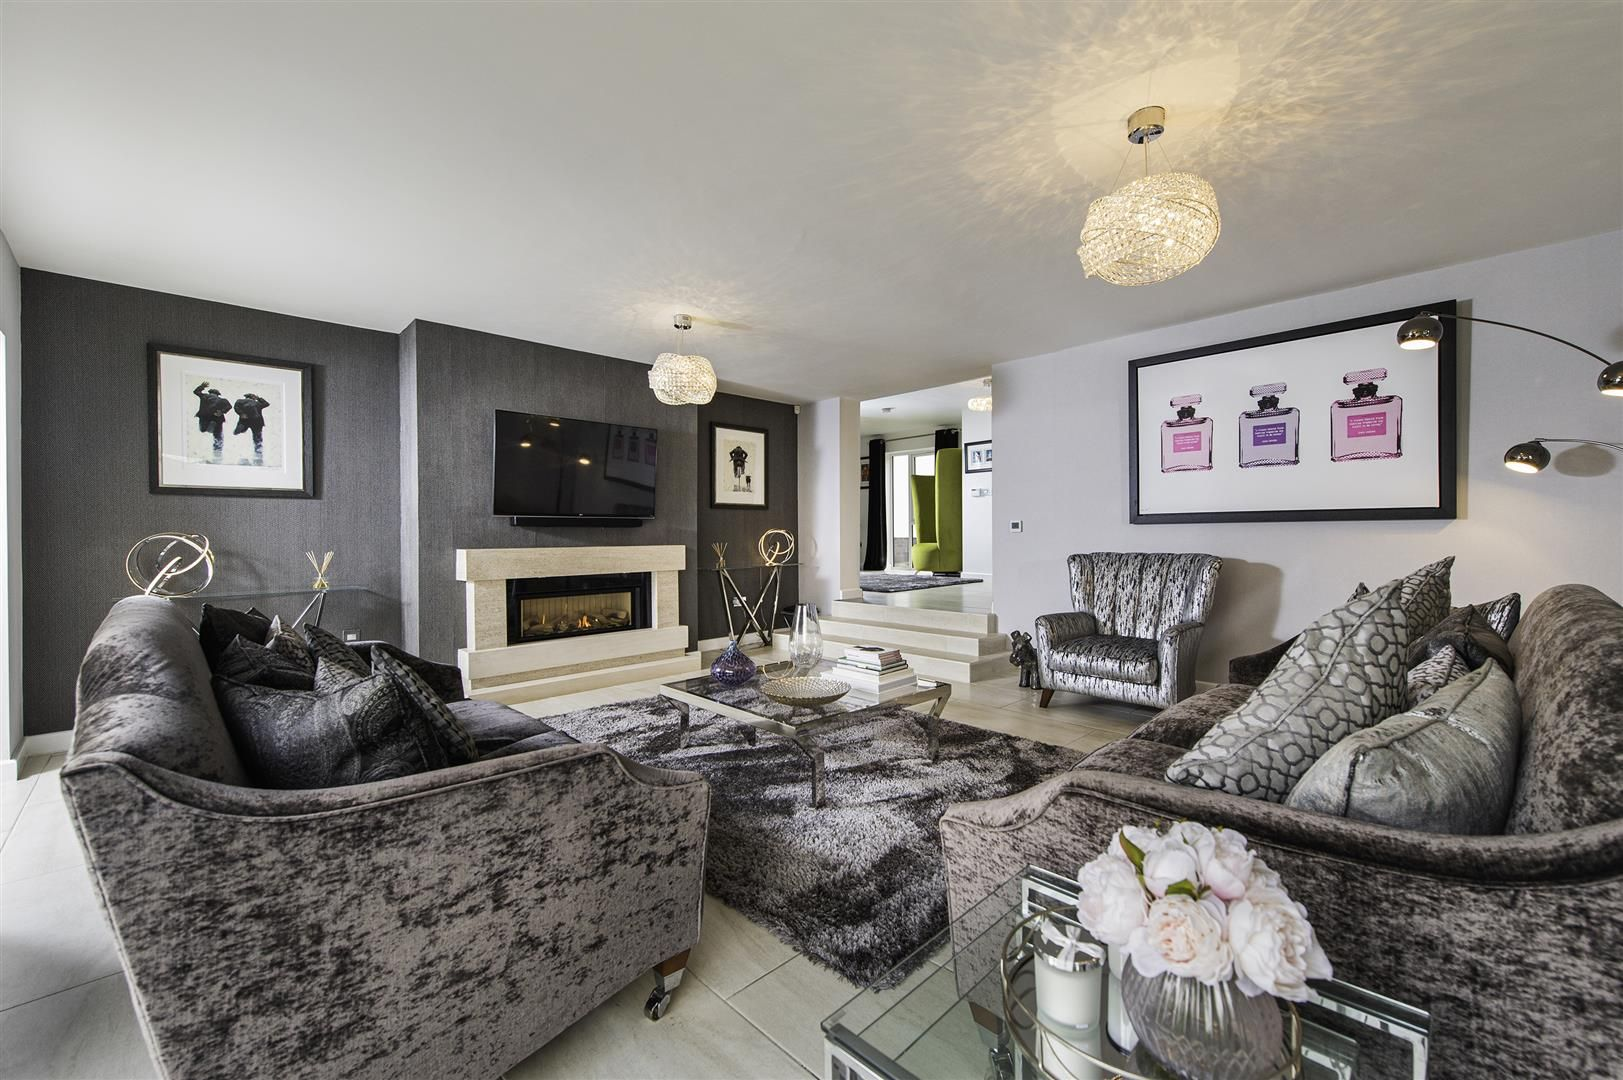 4 bed detached for sale in Stourton  - Property Image 4